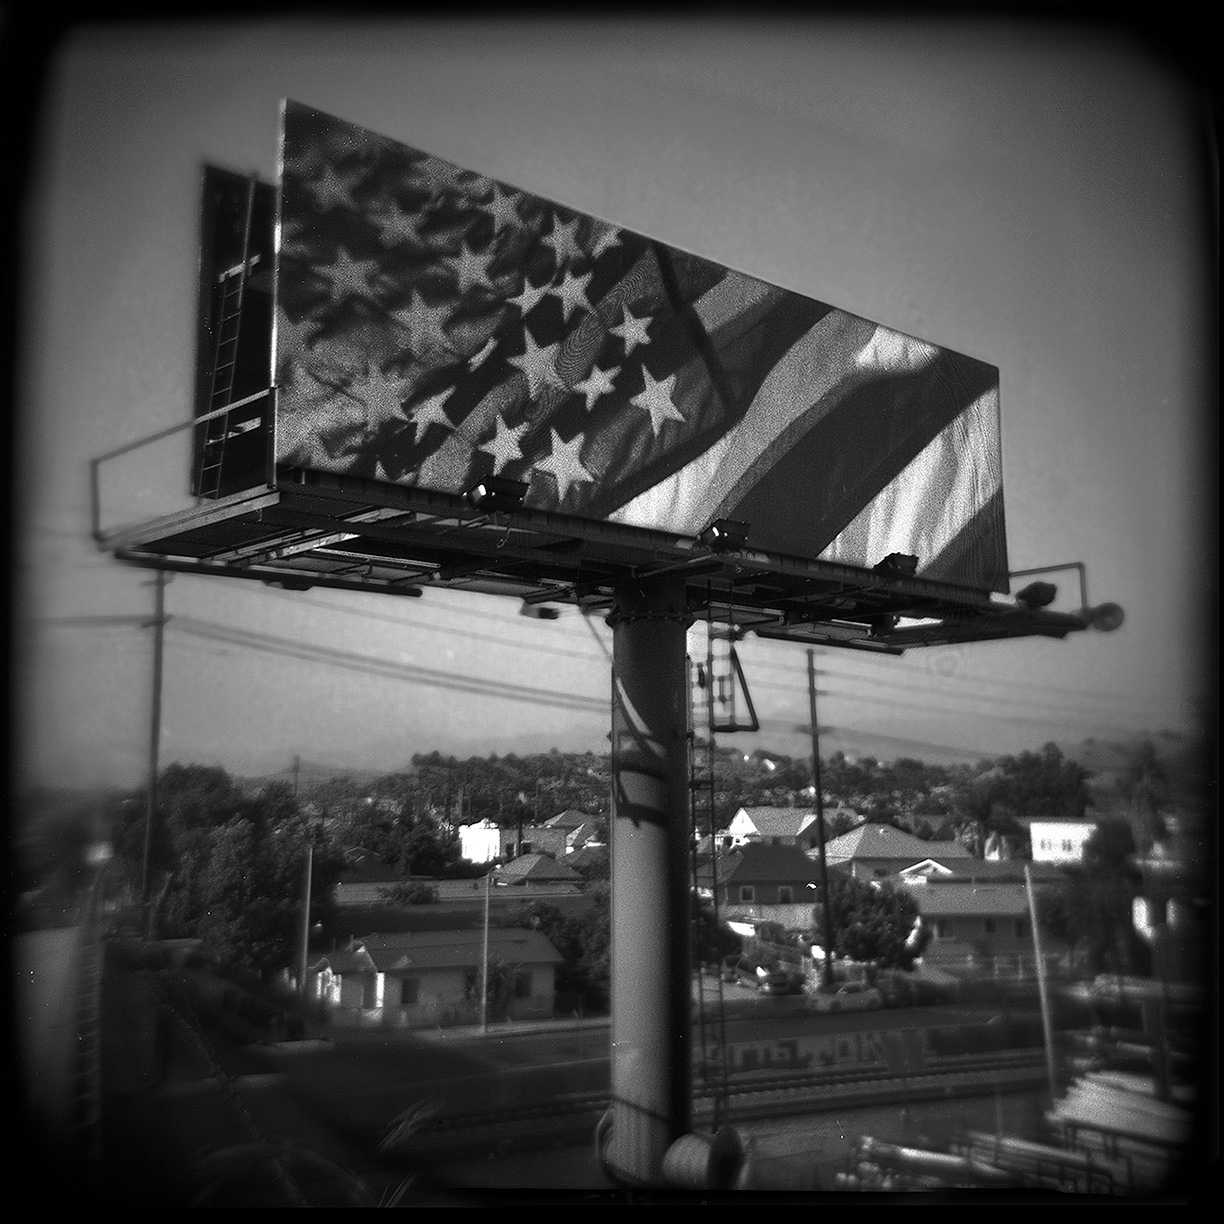 08-ThomasAlleman-OldGlory-WEBSITE-042115